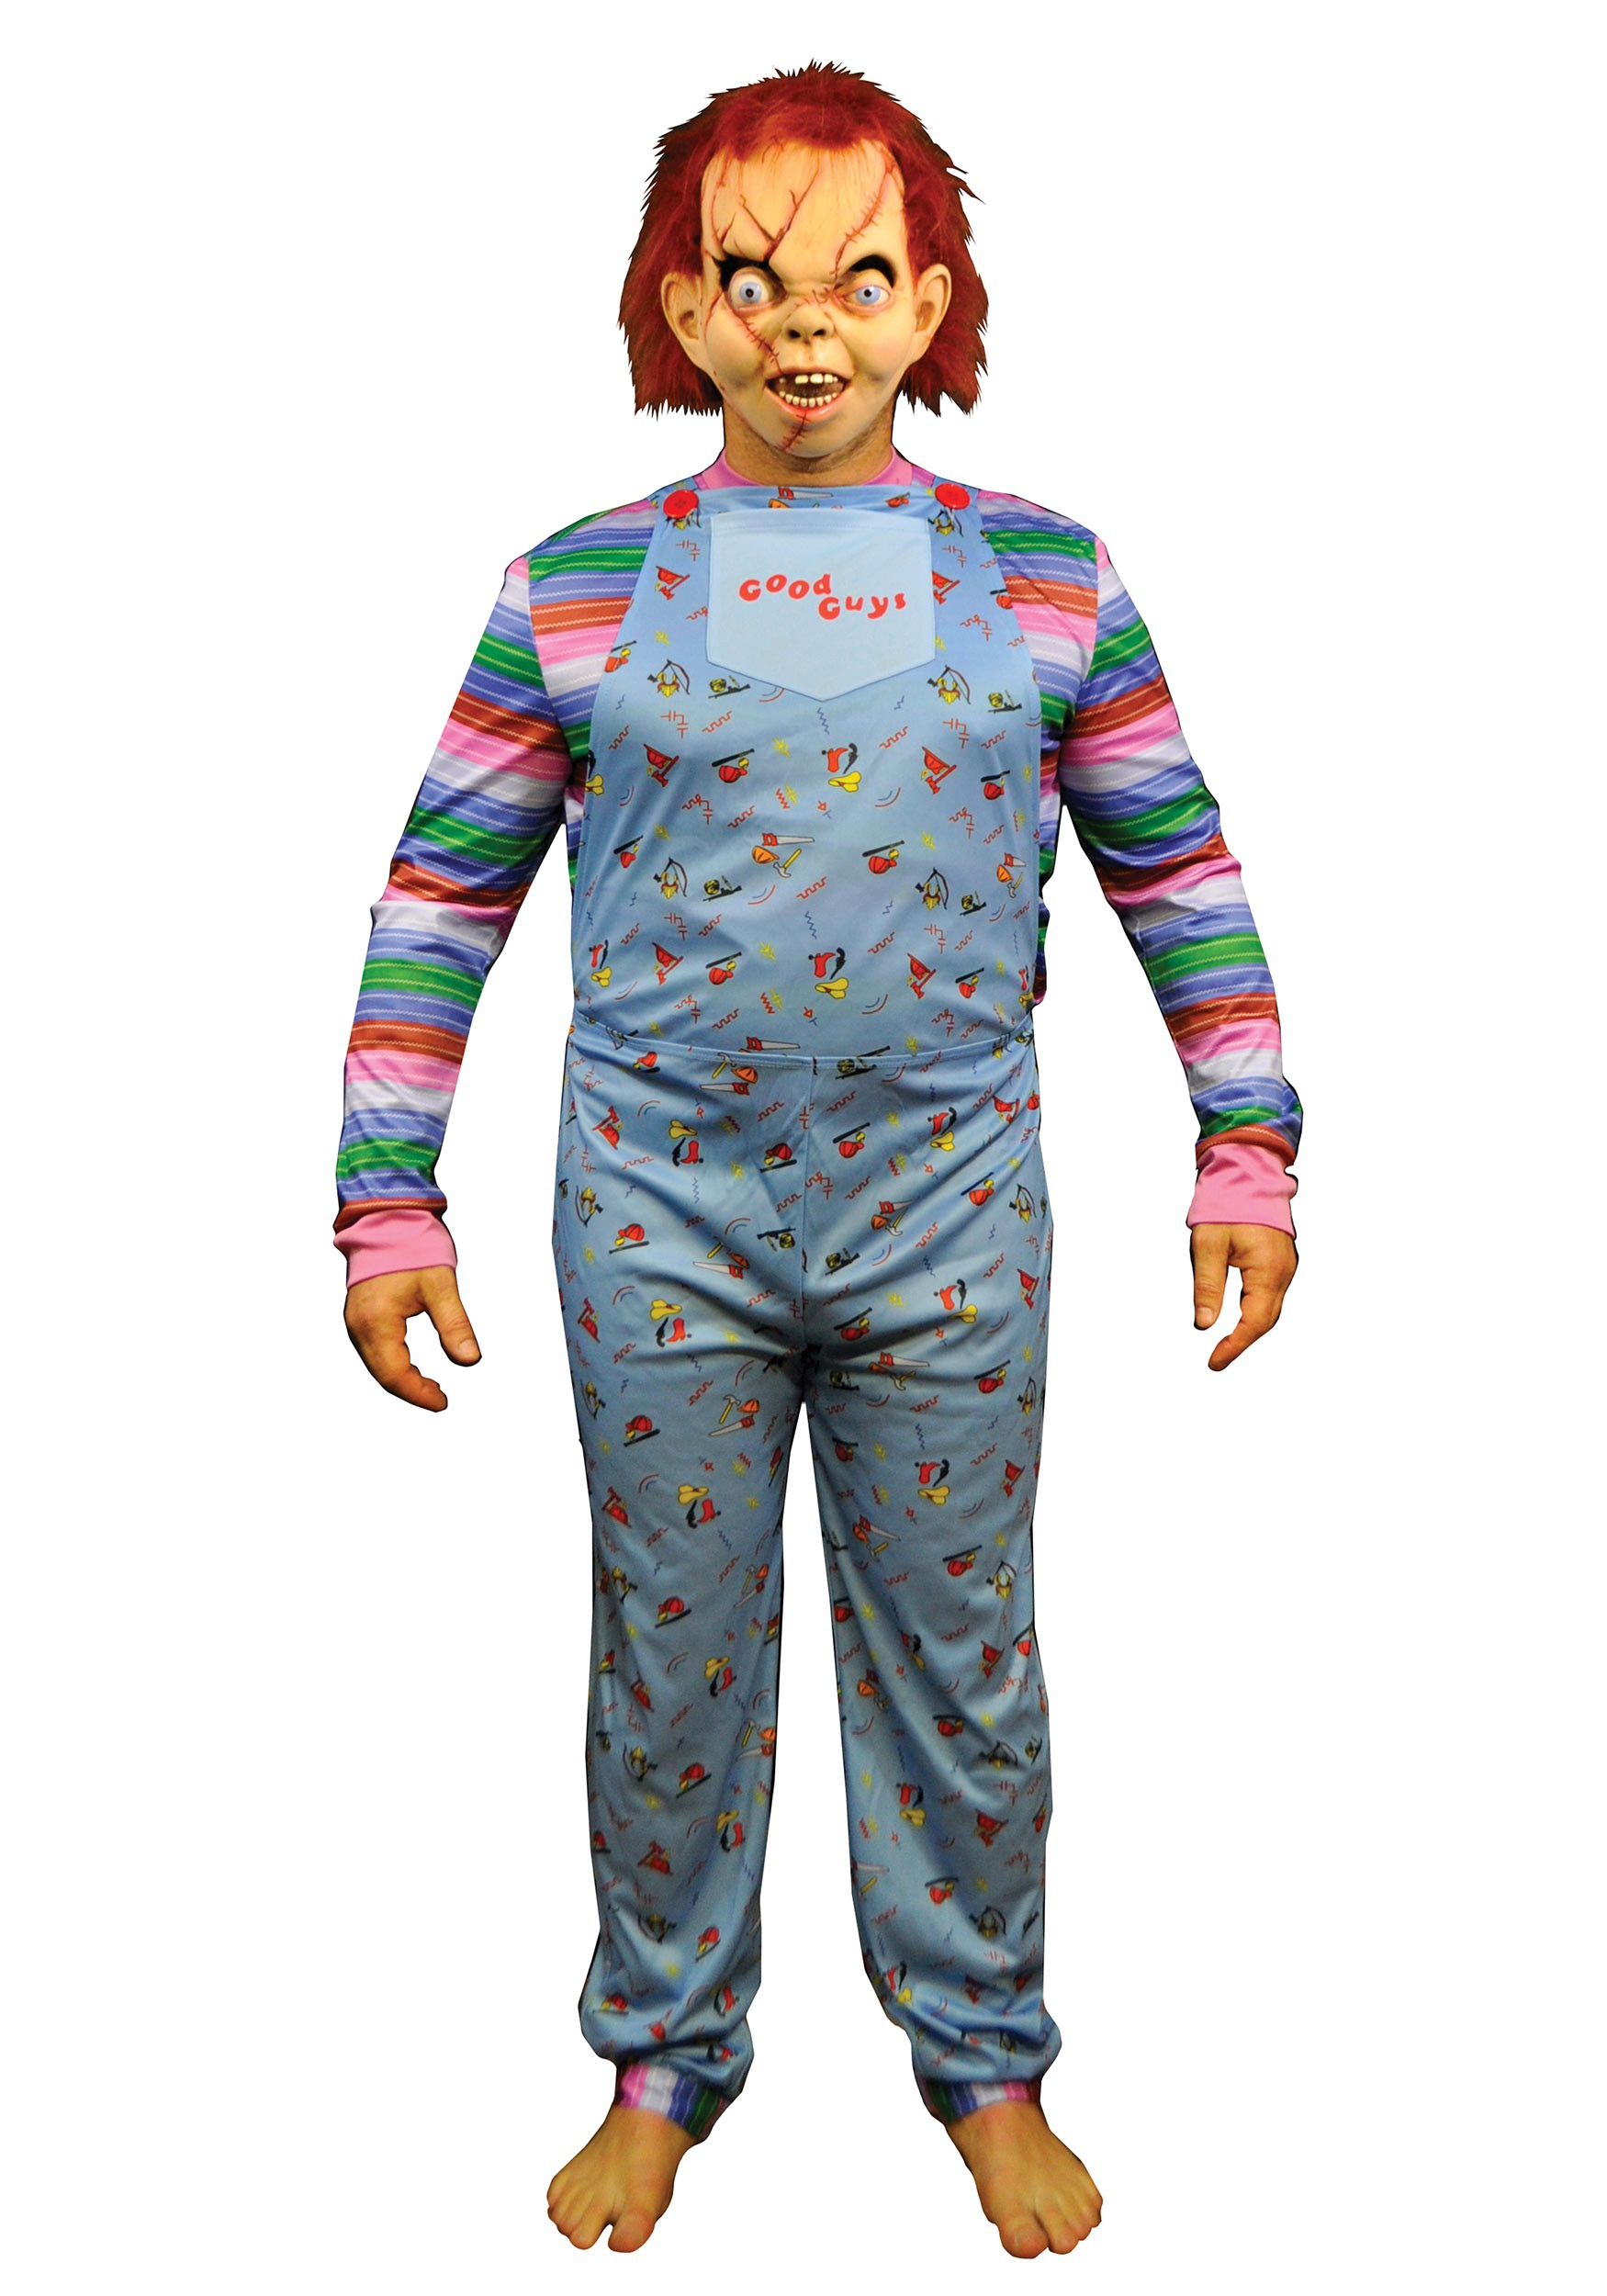 chucky doll costume - photo #33